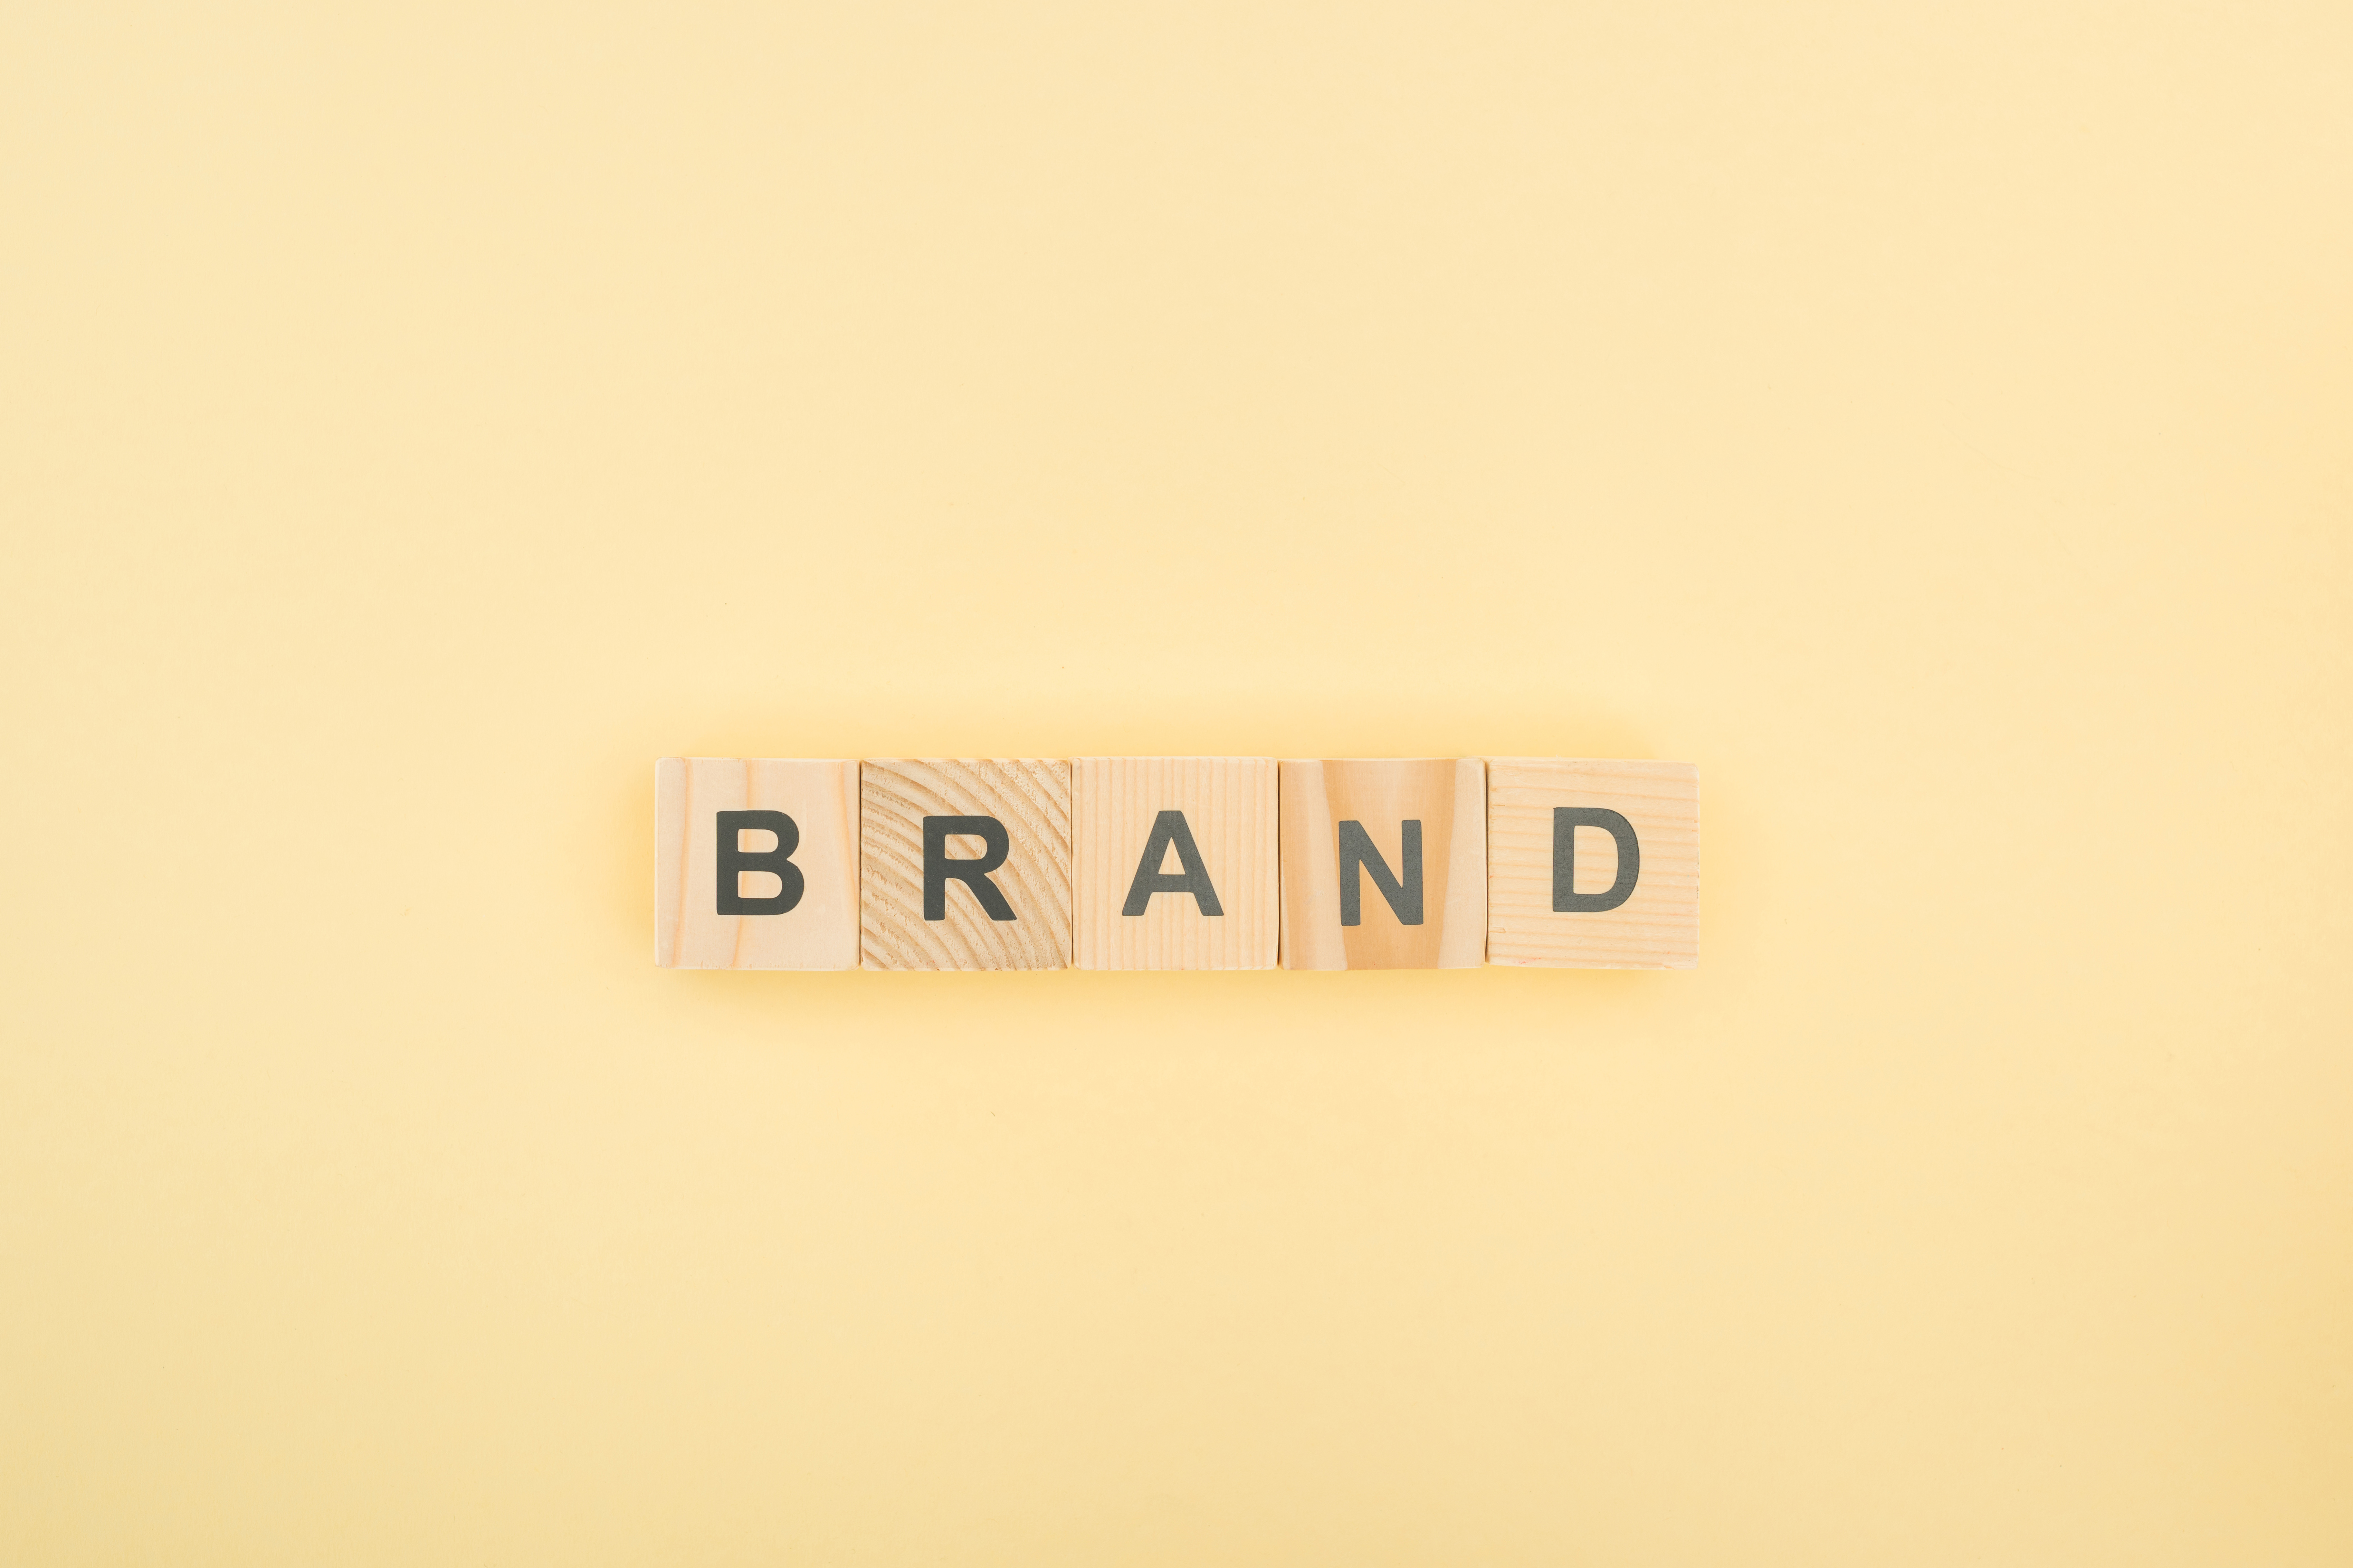 types of brand elements